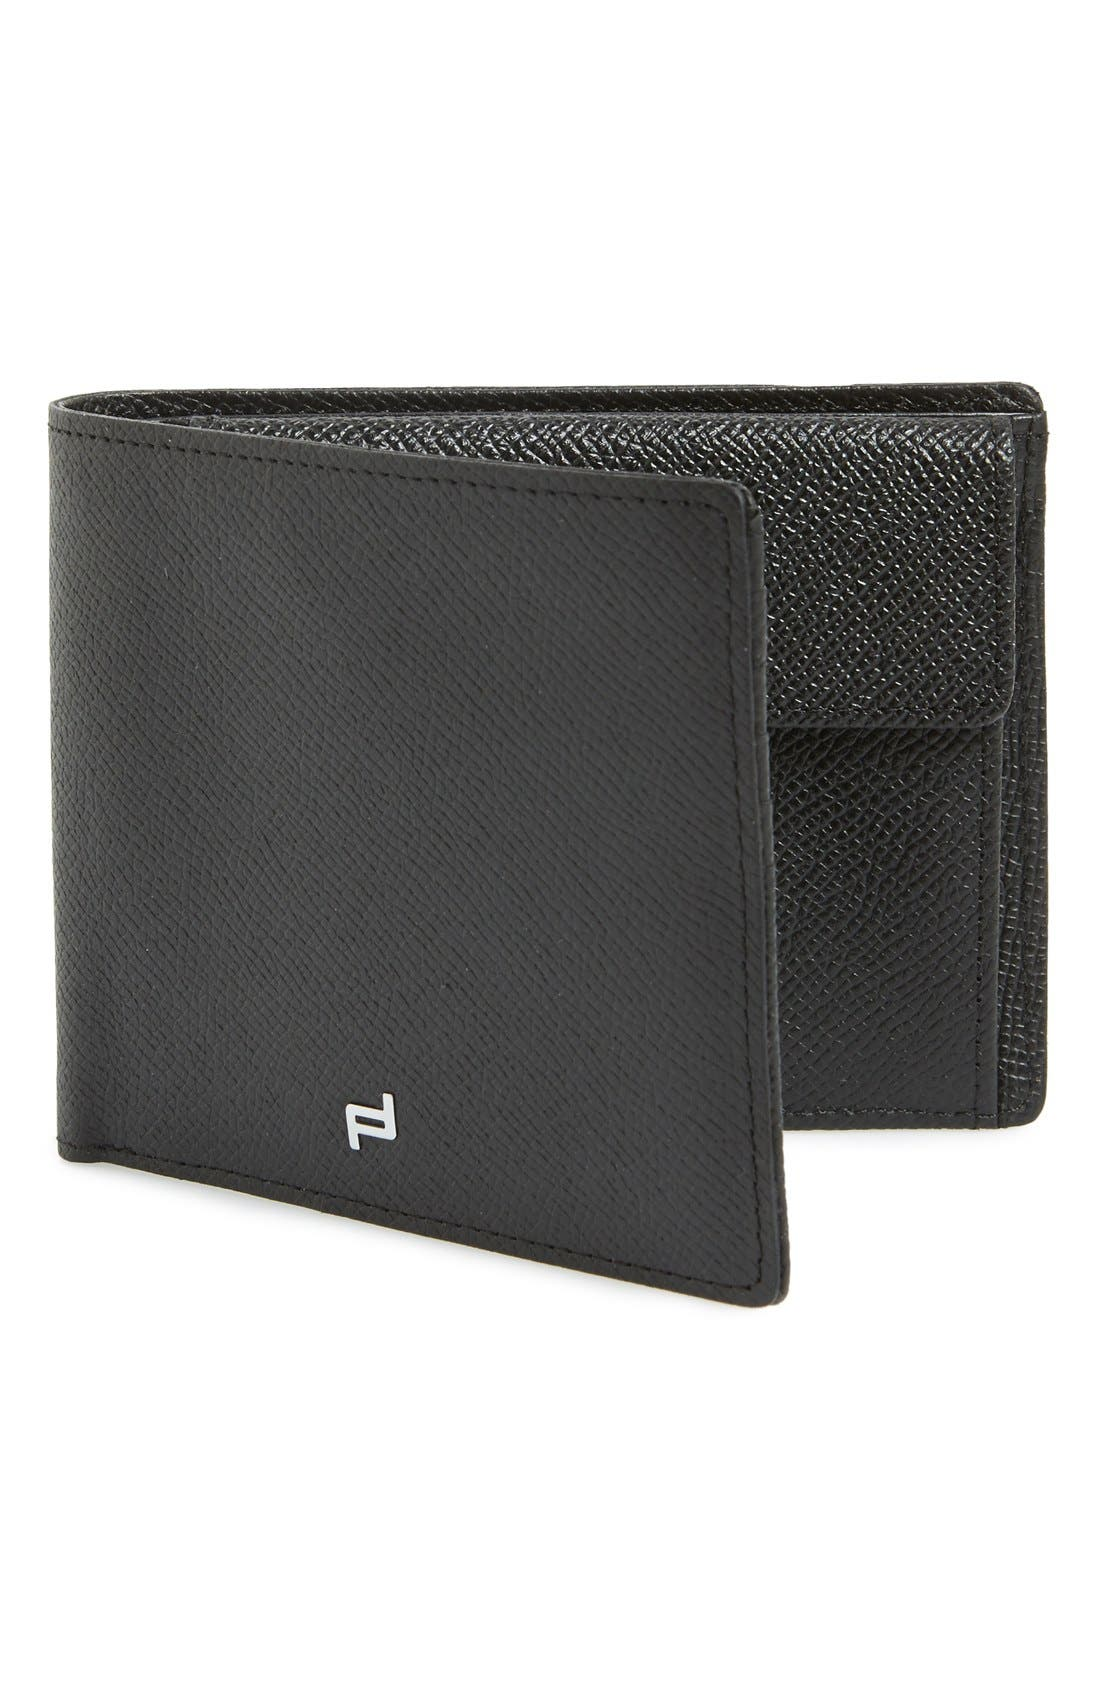 'French Classic 3.0' Leather Billfold Wallet,                         Main,                         color, Black